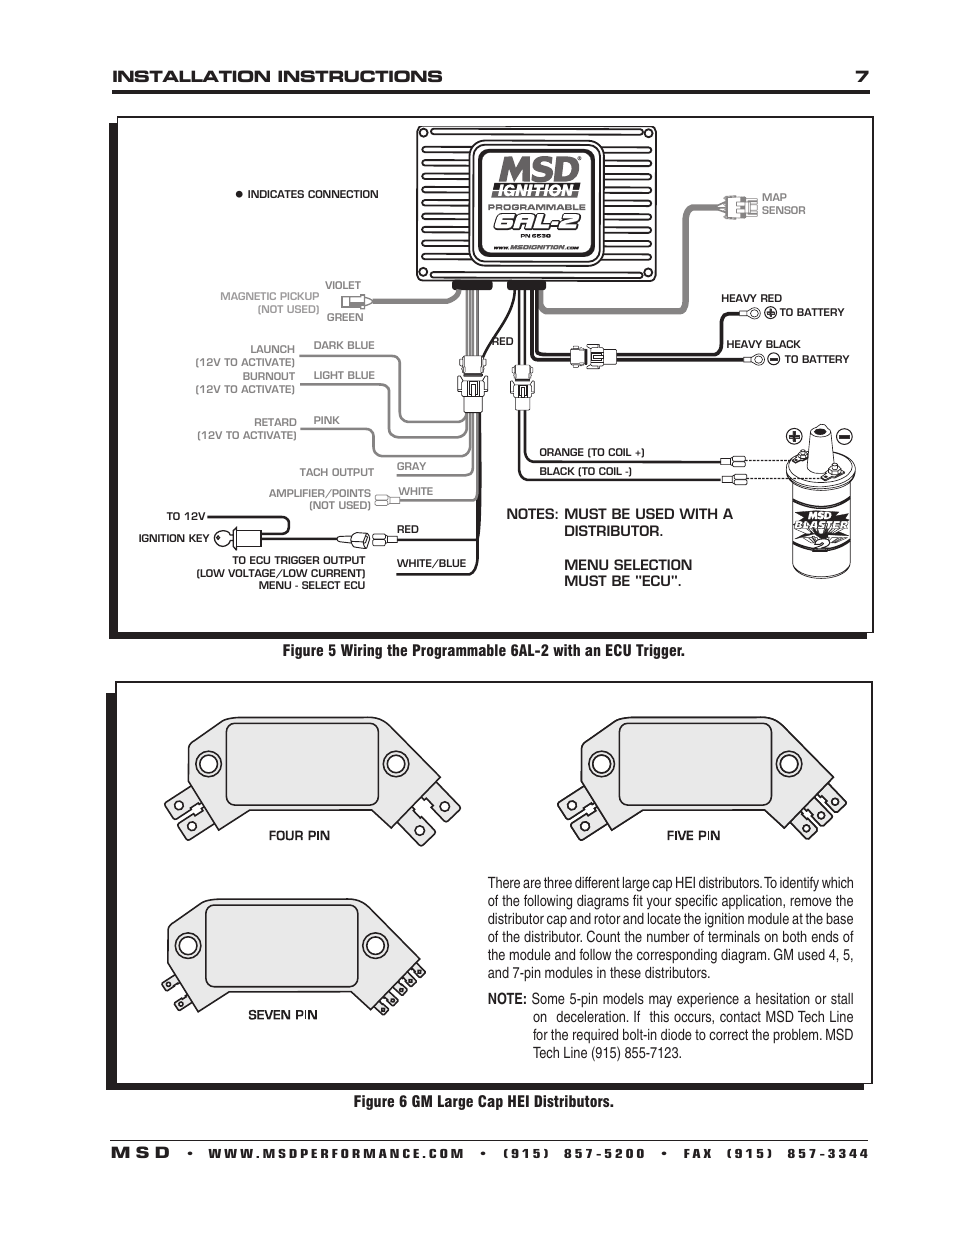 msd 6530 digital programmable 6al-2 installation user manual | page 7 / 20